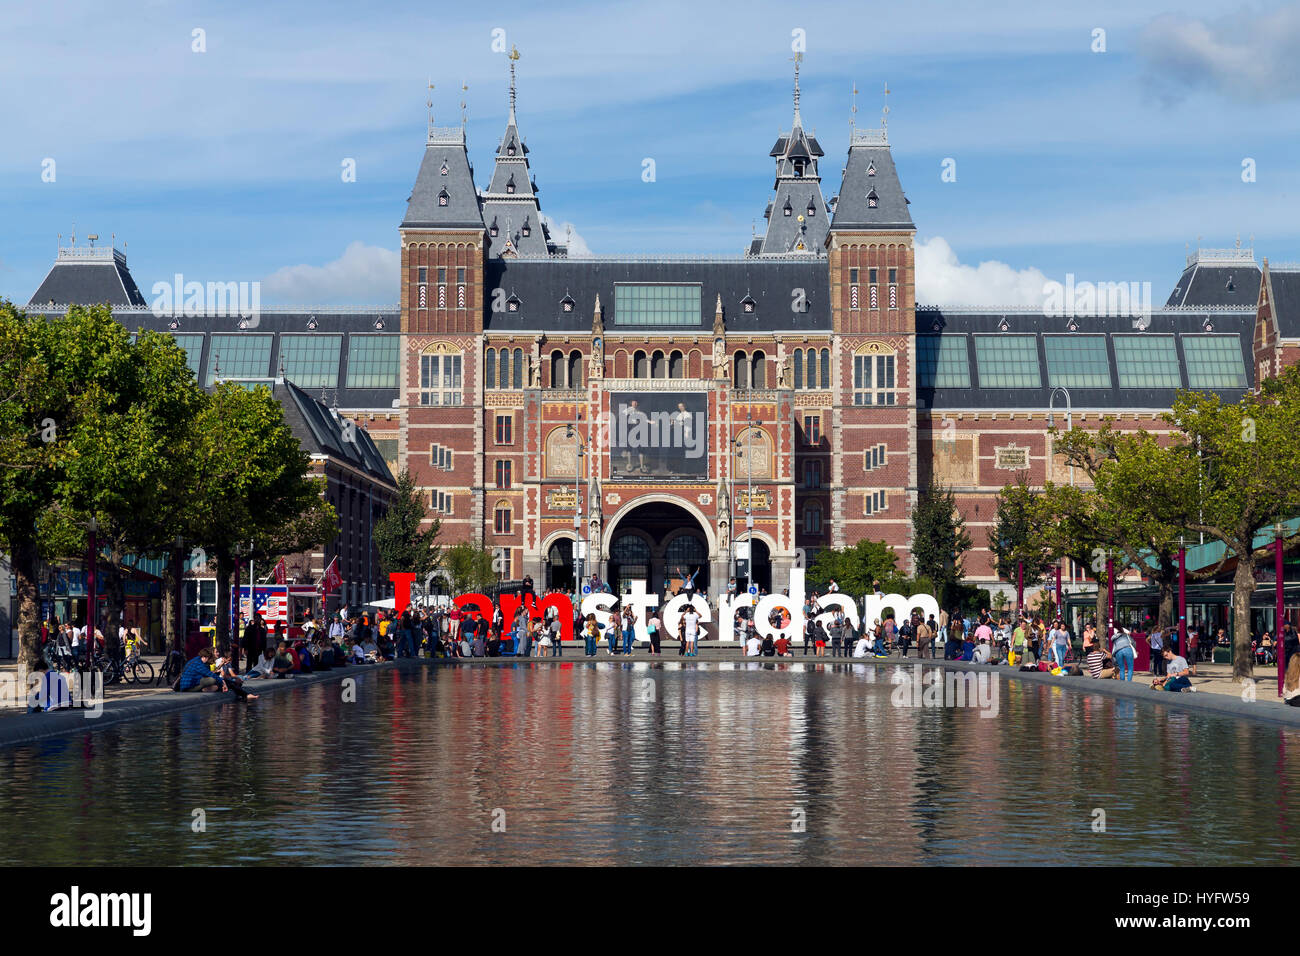 tourists and visitors near the i love amsterdam installation stock photo royalty free image. Black Bedroom Furniture Sets. Home Design Ideas